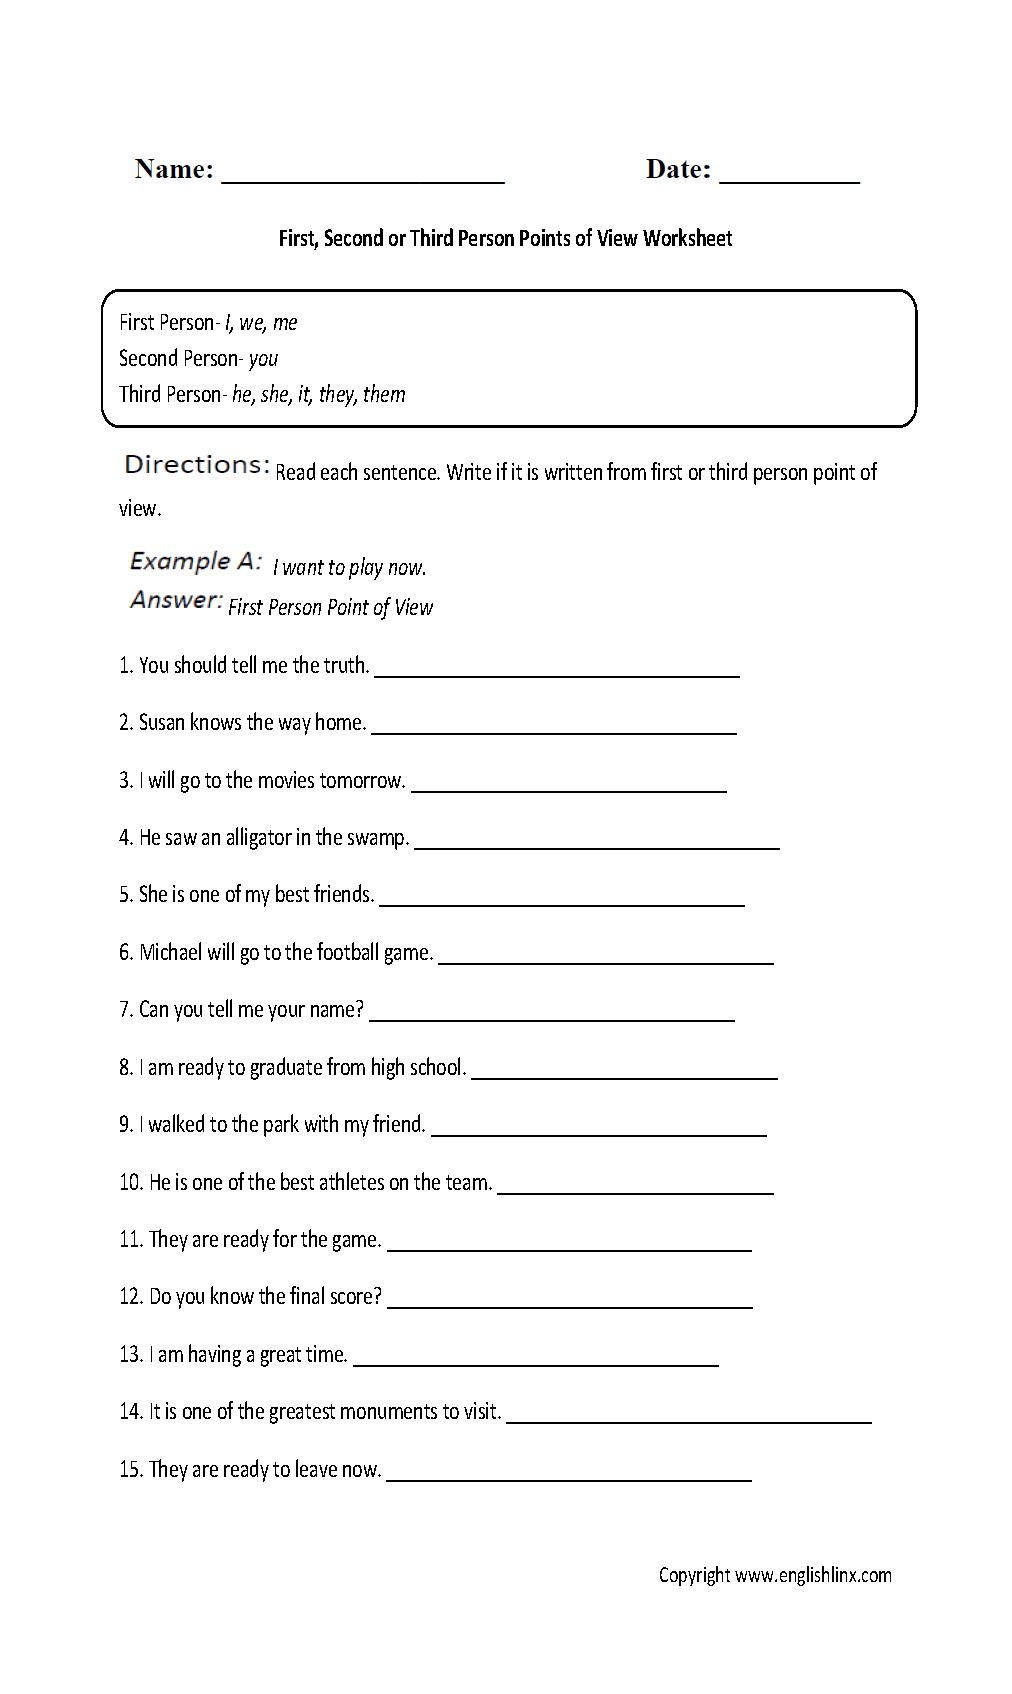 Proatmealus  Nice Englishlinxcom  Point Of View Worksheets With Lovable Point Of View Worksheet With Cute Printable Pattern Worksheets For Kindergarten Also Conjunctions Worksheets For Kids In Addition Worksheets For Adding And Subtracting Decimals And Worksheet For Active And Passive Voice As Well As Study Skills For Middle School Worksheets Additionally Th Grade Verb Worksheets From Englishlinxcom With Proatmealus  Lovable Englishlinxcom  Point Of View Worksheets With Cute Point Of View Worksheet And Nice Printable Pattern Worksheets For Kindergarten Also Conjunctions Worksheets For Kids In Addition Worksheets For Adding And Subtracting Decimals From Englishlinxcom